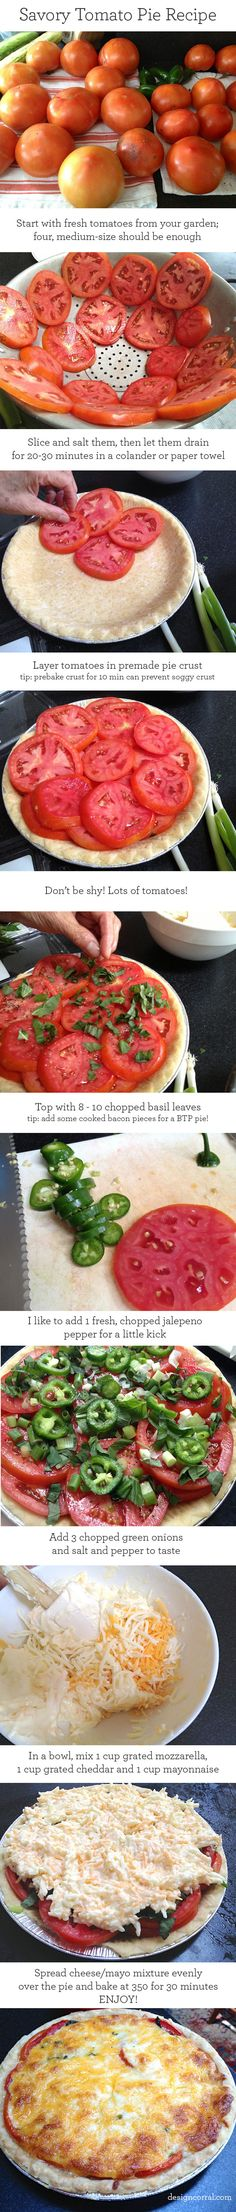 Savory Tomato Pie Recipe –sounds delicious but I might substitute pesto sauce for mayo! Vegetable Recipes, Vegetarian Recipes, Cooking Recipes, Healthy Recipes, Pie Recipes, Recipies, I Love Food, Good Food, Yummy Food